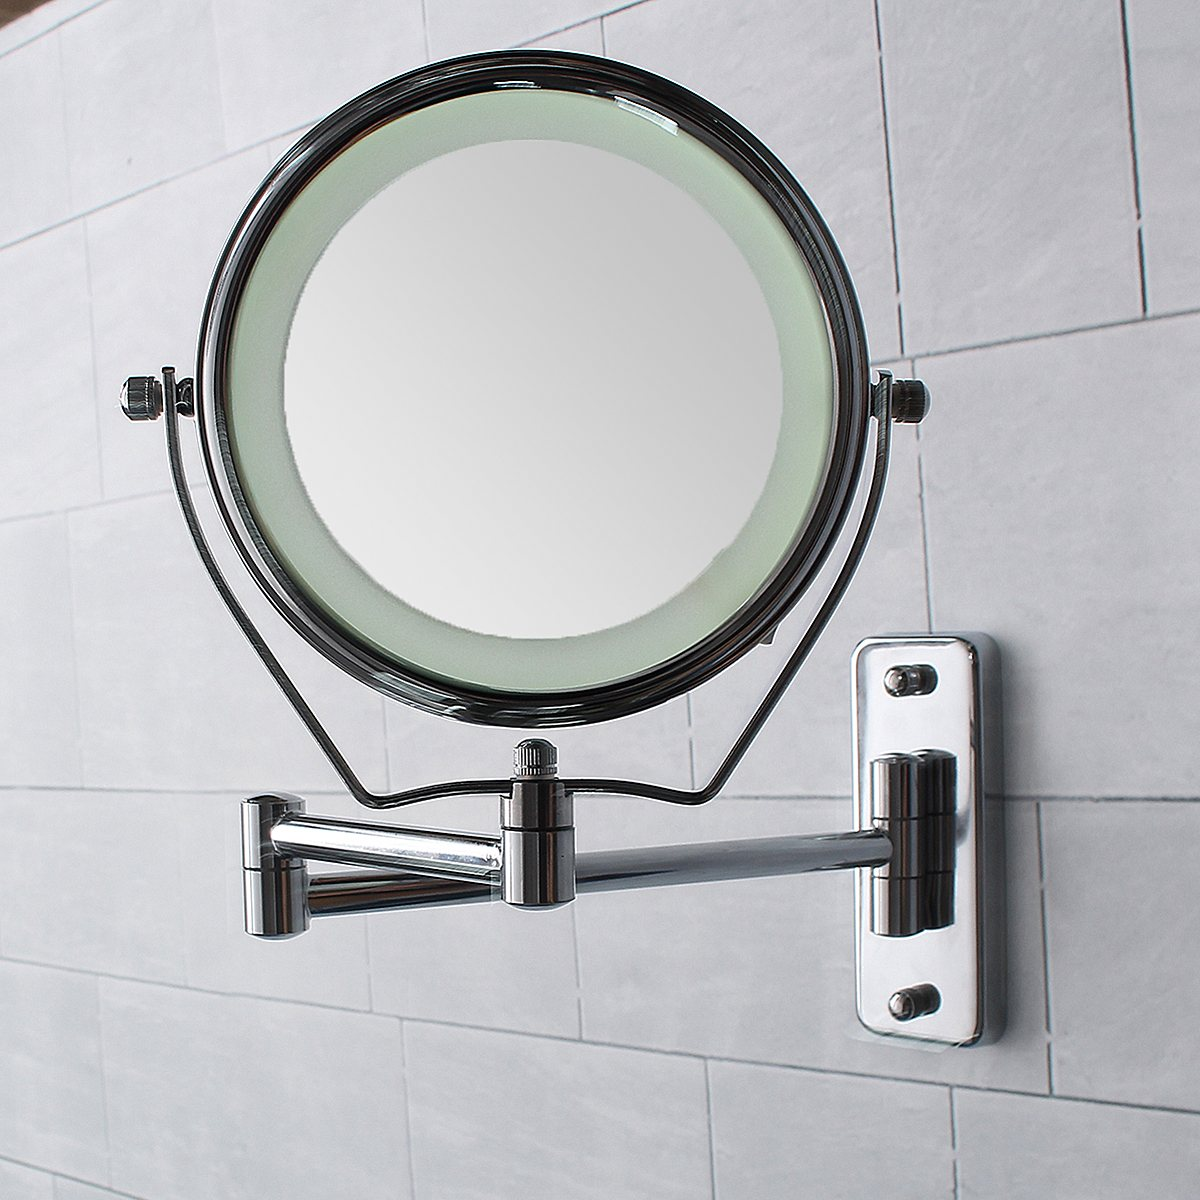 6 Inch Double Side Led Illuminated Magnifying Bathroom Shaving Shower Mirrors 7x Makeup Cosmetic